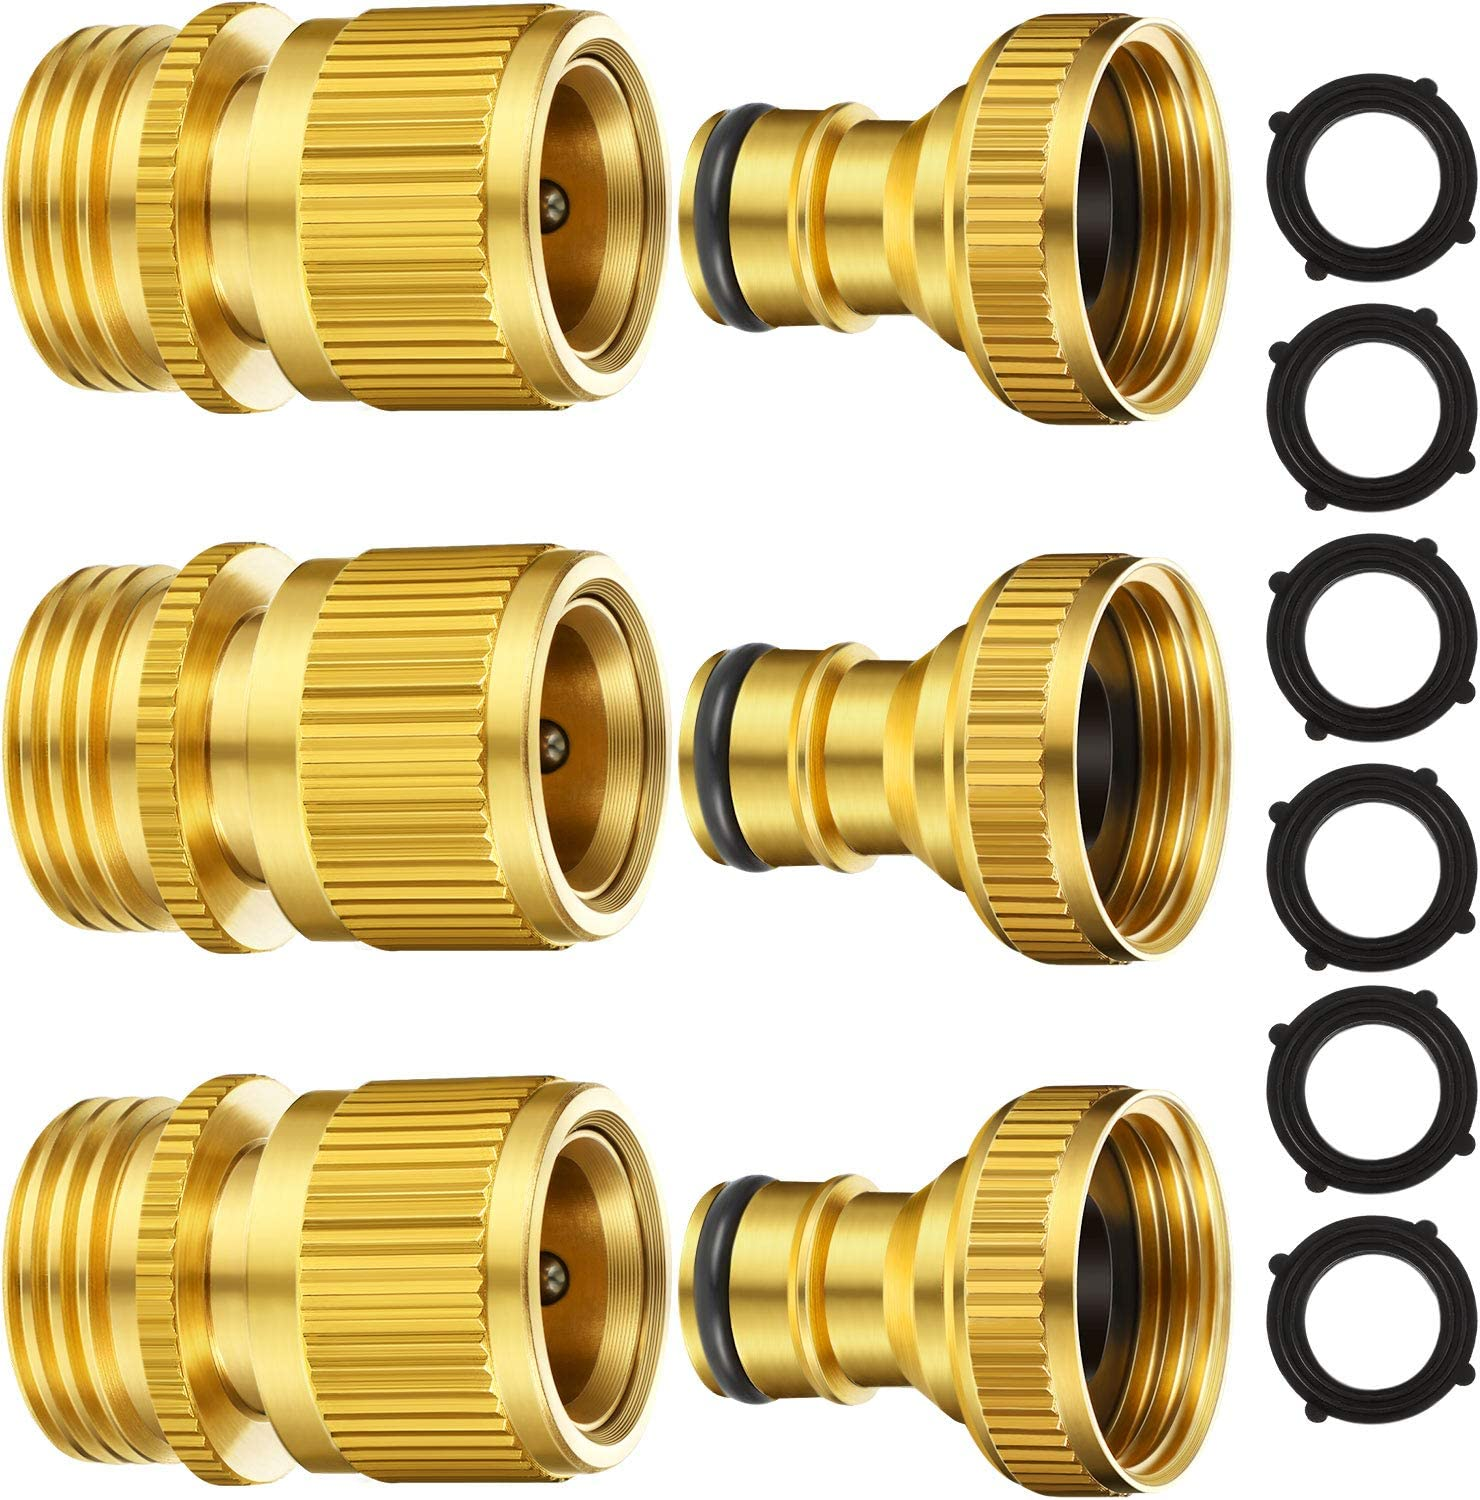 Garden Hose Quick Connect Fittings Solid Brass Quick Connector 3/4 Inch GHT Garden Water Hose Connectors with Extra Rubber Washers, Male (IT) and Female (OT) (3 Sets)